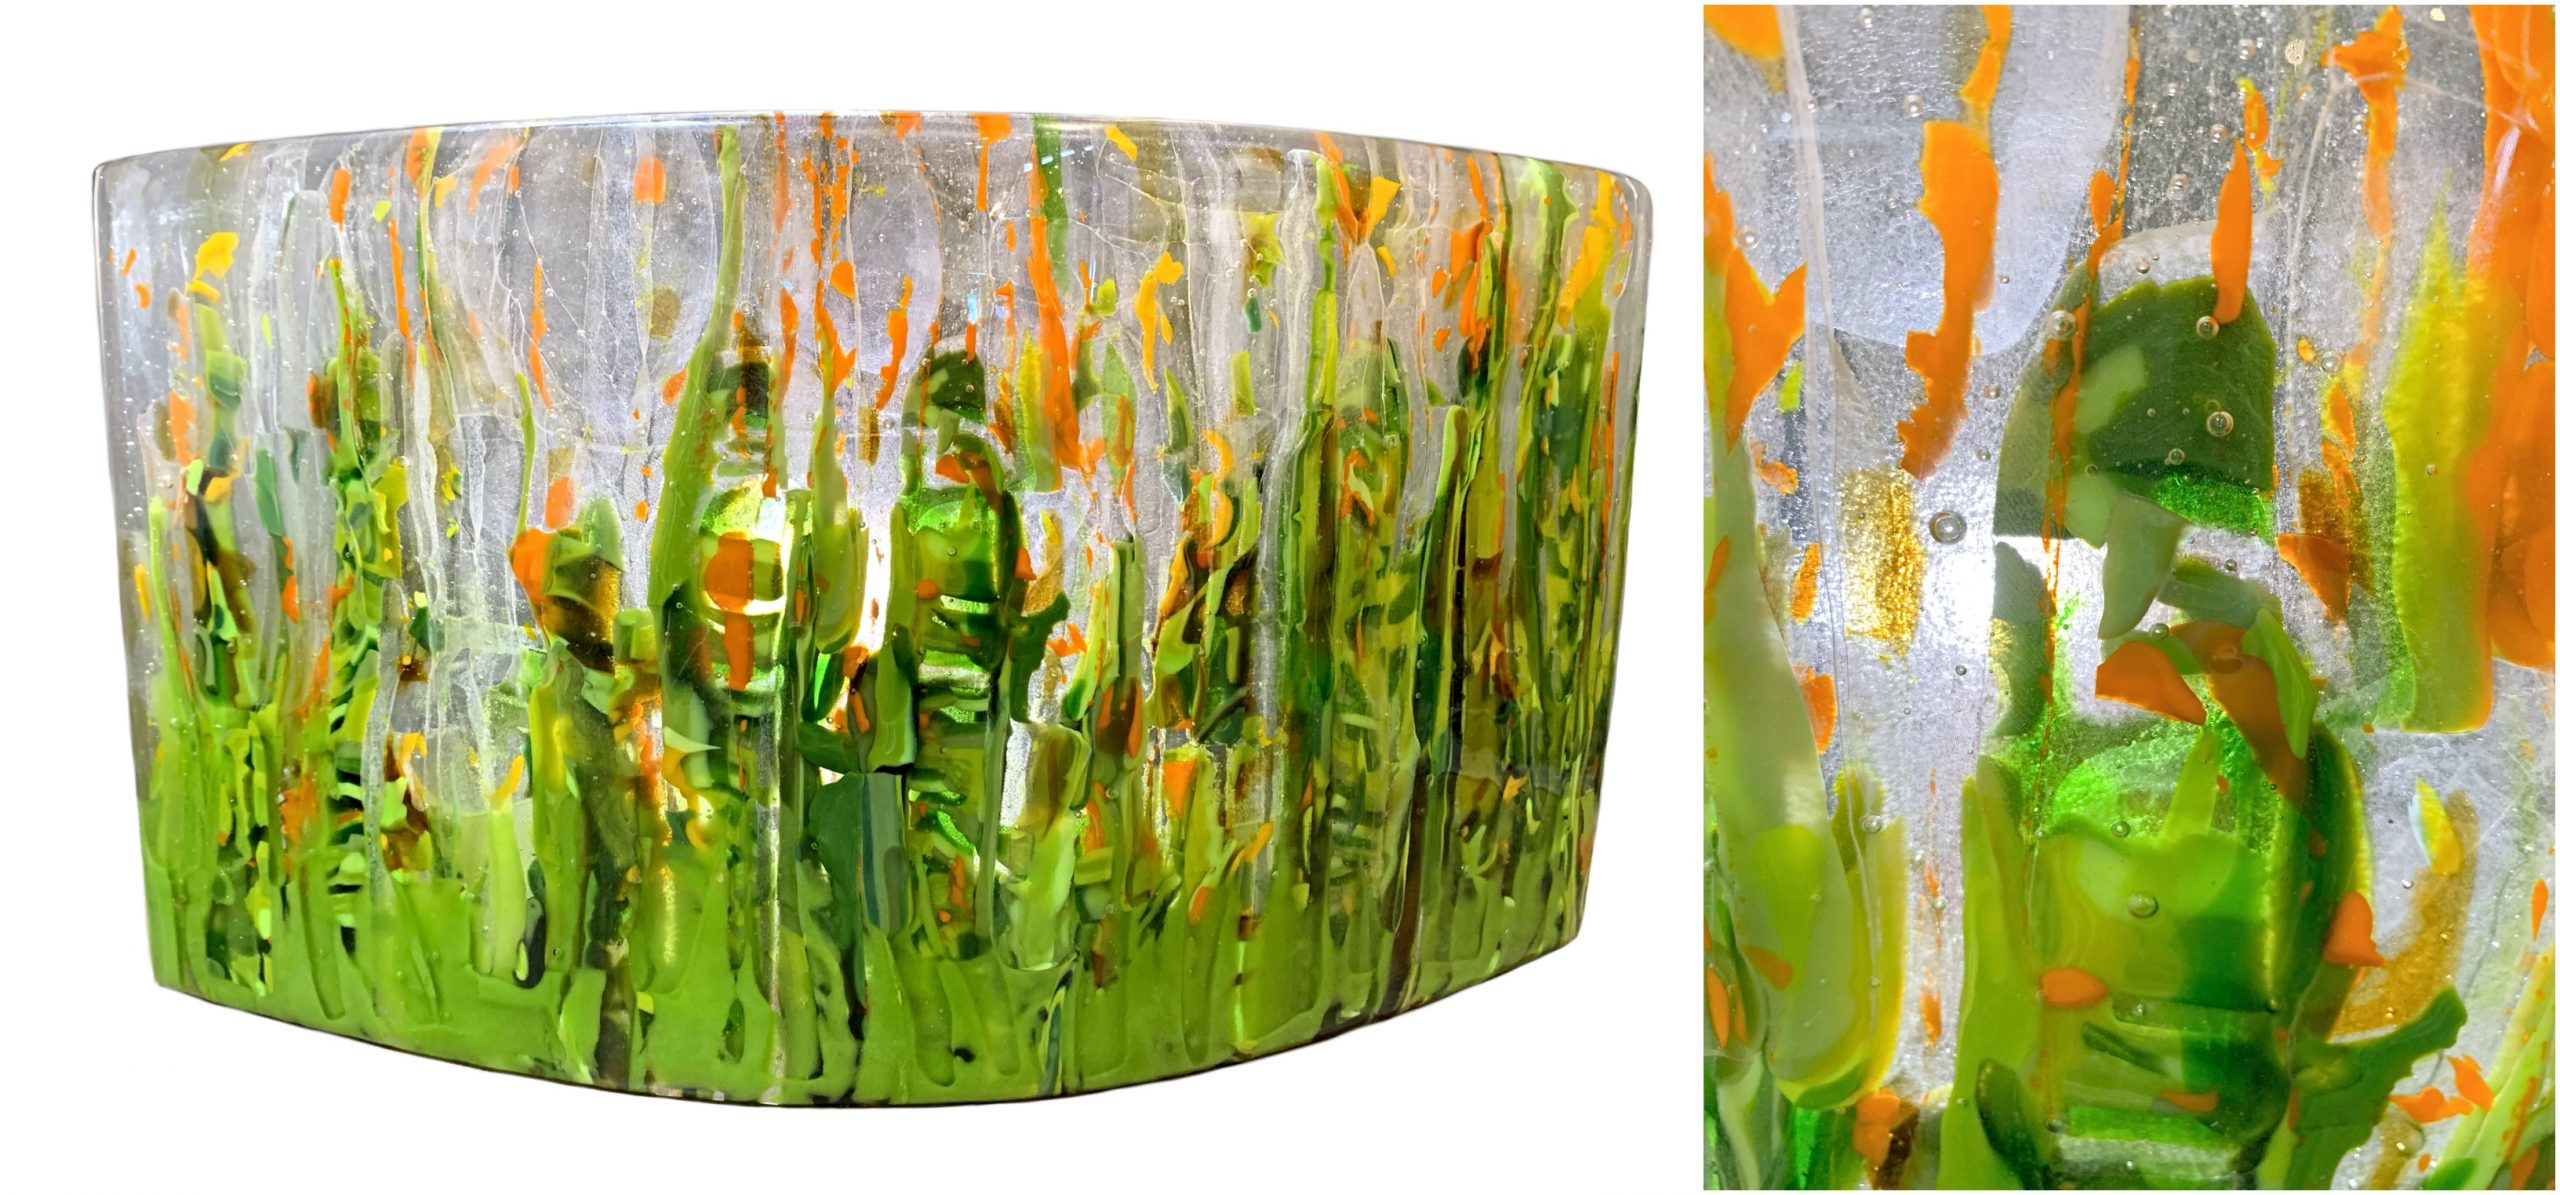 Reaching for Summer, alpine flower cast glass panel by Heather Cuell | Effusion Art Gallery + Cast Glass Studio, Invermere BC